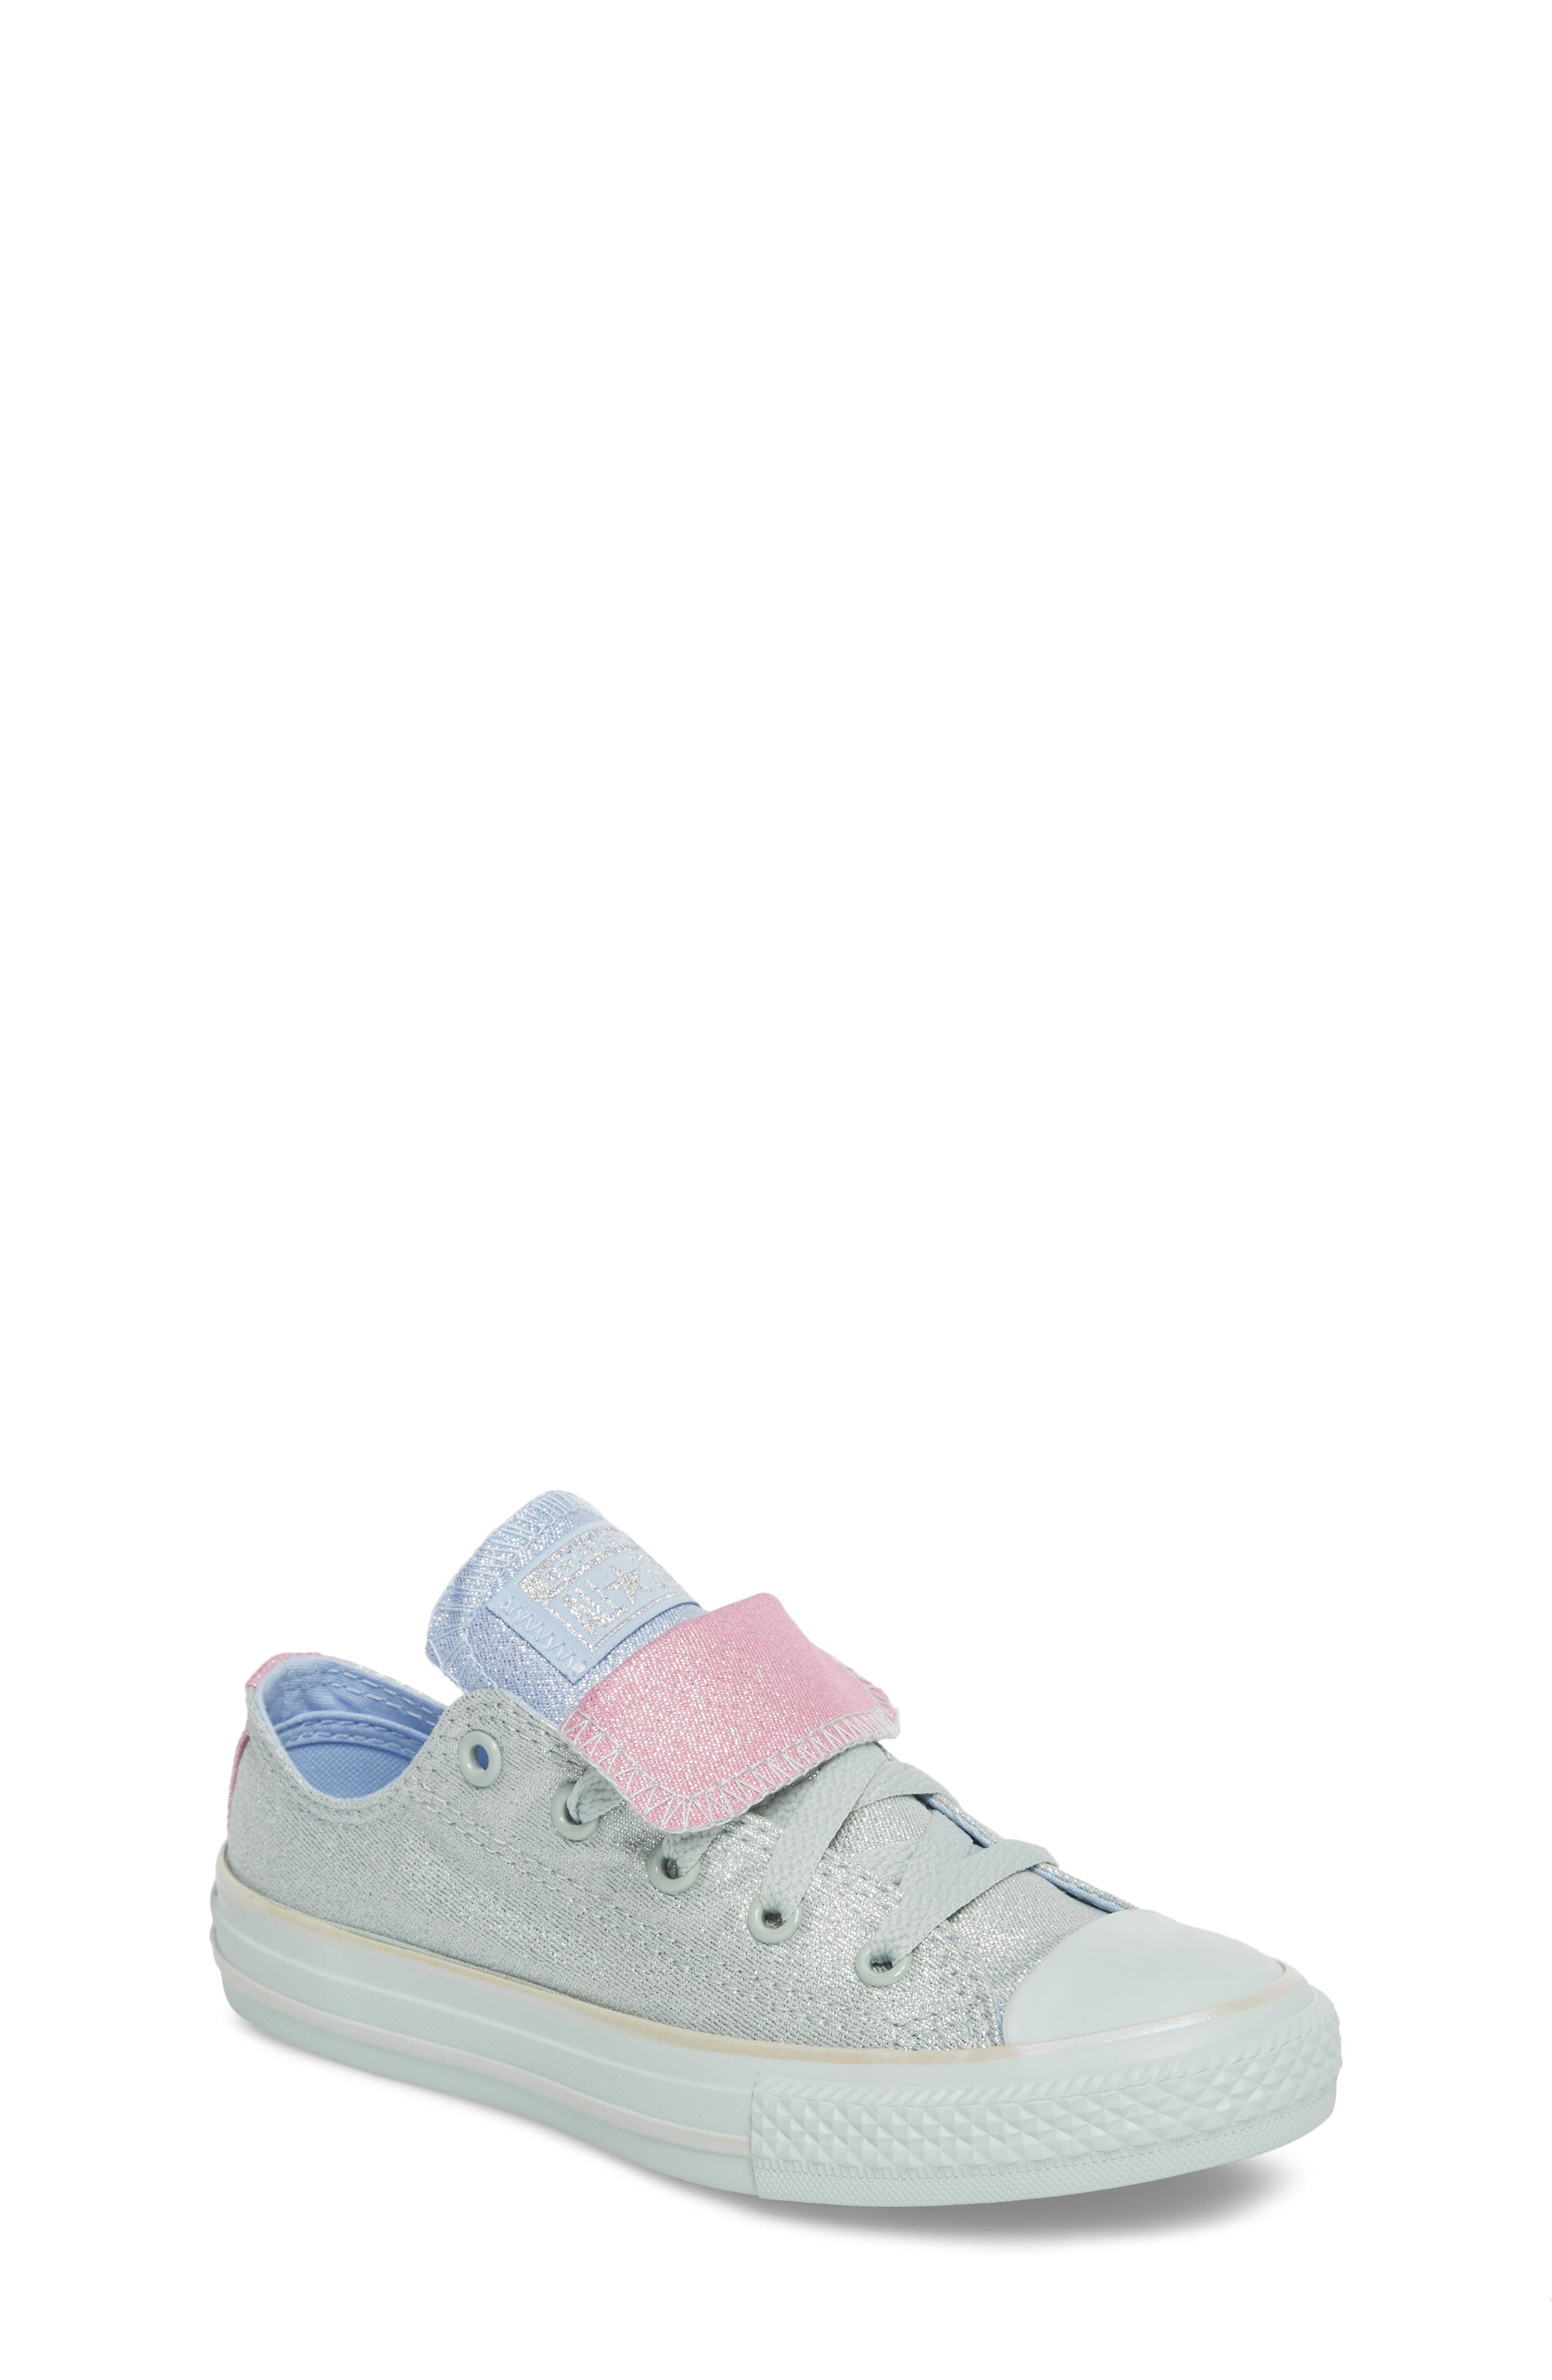 Converse All Star® Mono Shine Double Tongue Sneaker (Baby, Walker, Toddler, Little Kid & Big Kid)